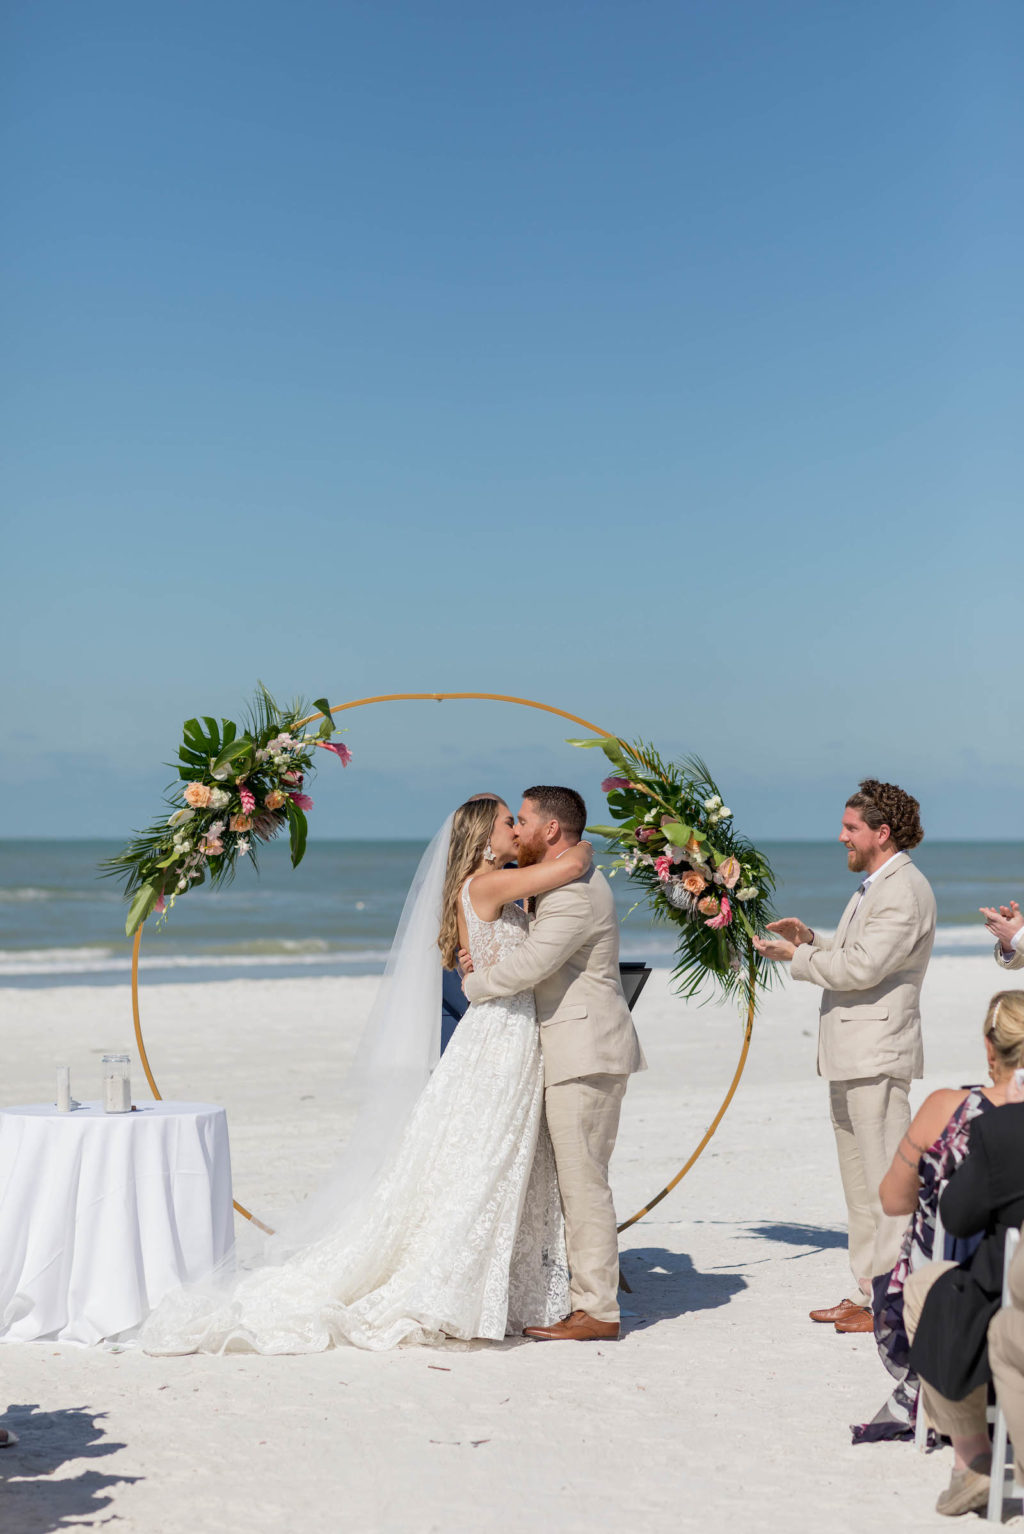 Bride and Groom First Kiss during Outdoor Beach Wedding at St. Pete Beach Wedding Venue The Don CeSar Pink Palace | Monique Lhuillier Designer Wedding Dress A Line Ballgown Lace Bridal Gown | Groom Wearing Casual Khaki Suite | Beach Wedding Round Arch Floral Arrangement Spray | Tropical Wedding Floral Arrangement with Monstera Leaf Greenery, Peach Roses, White Anthurium, and Pink Protea